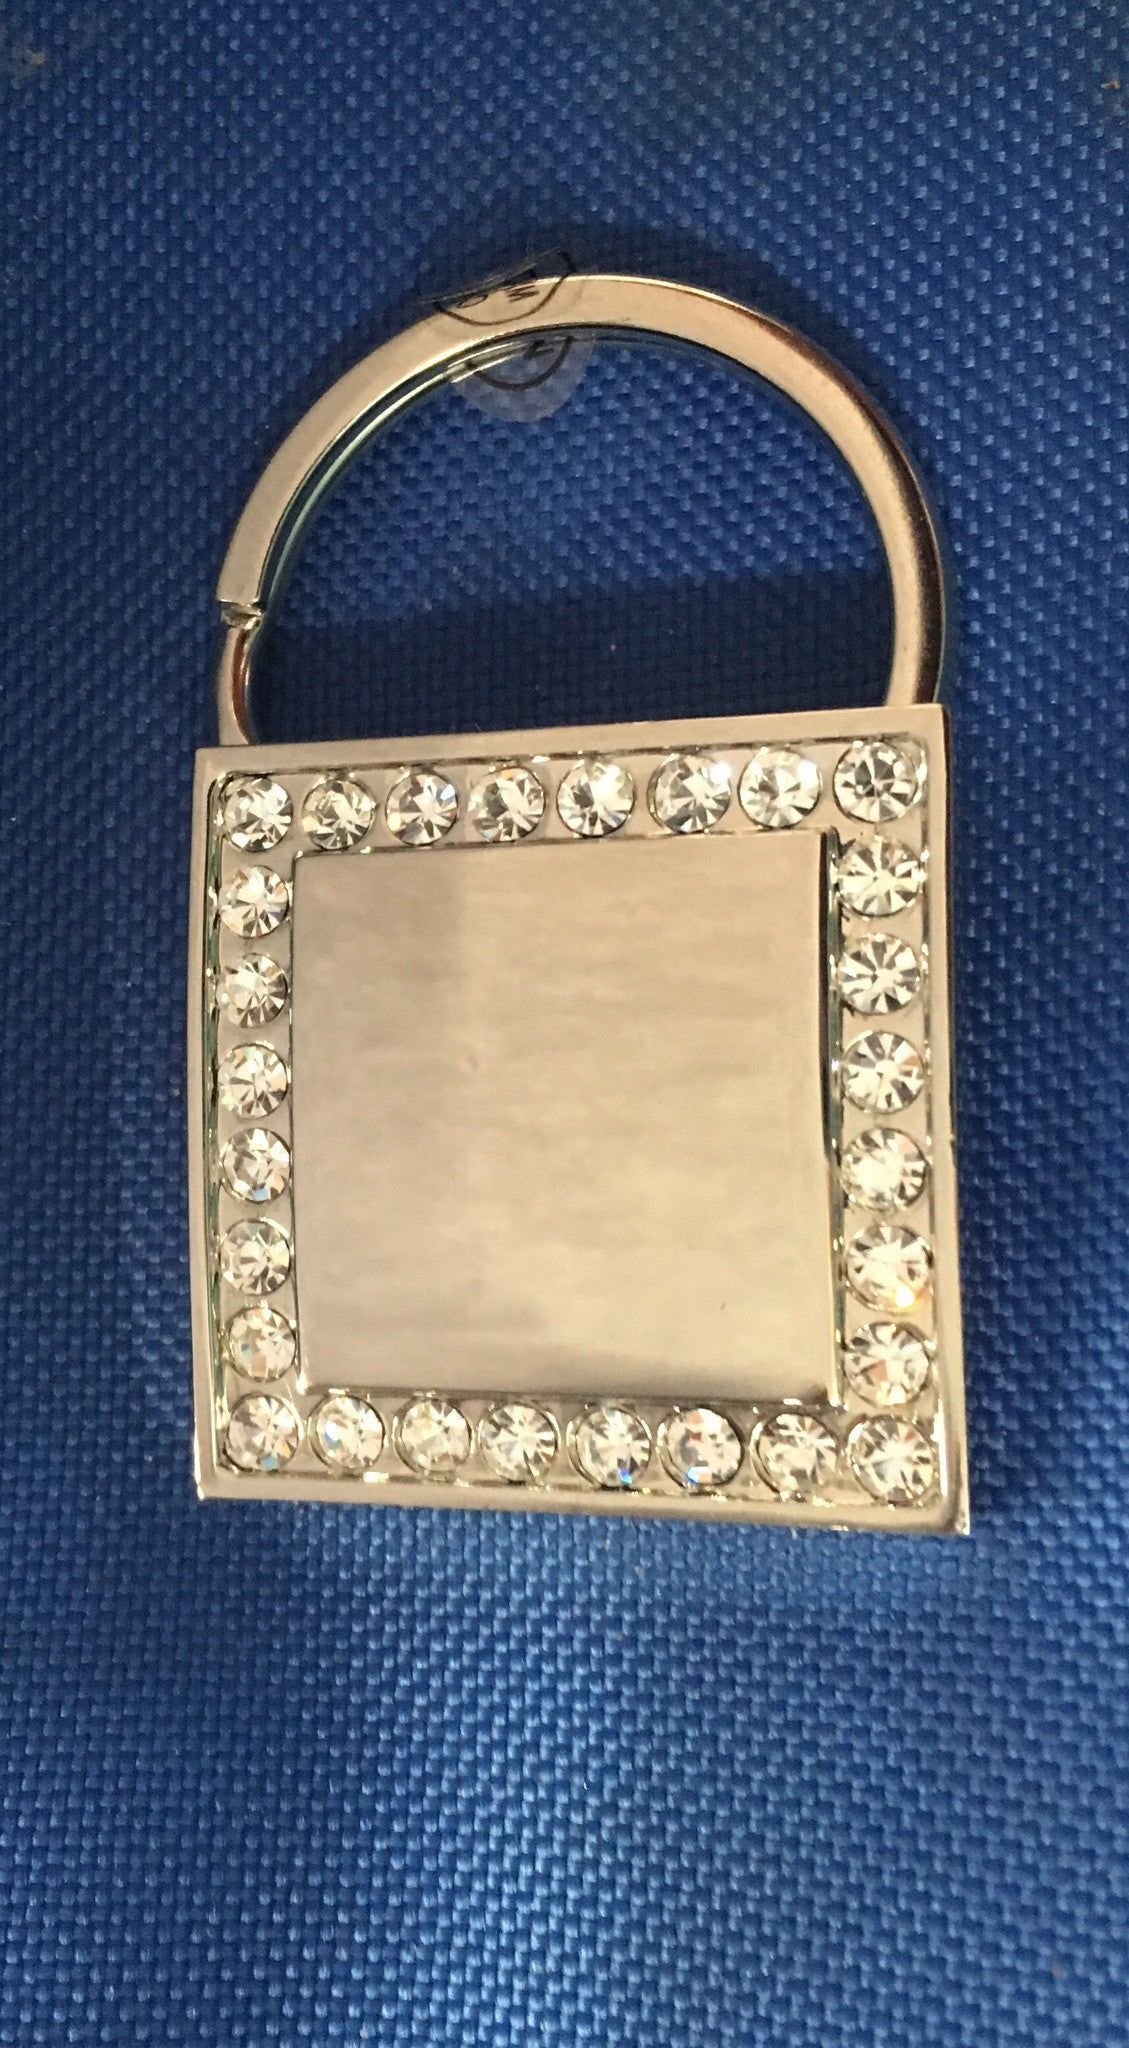 Rhinestone Bordered Square Key Chain with Pageant Crown-Key Chain-Schoppy's Since 1921